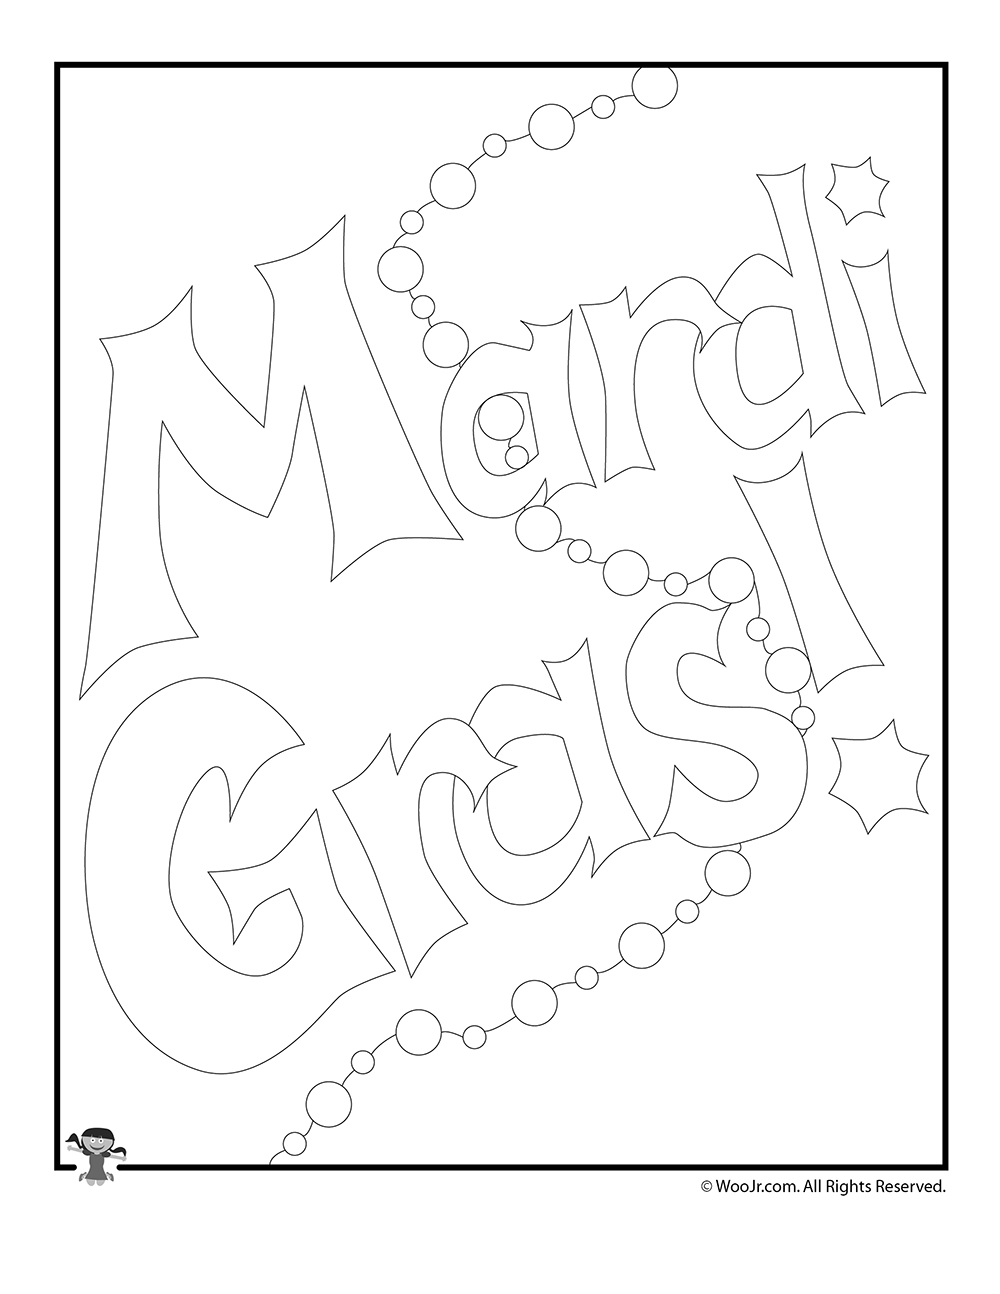 free printable webkinz coloring pages - photo#15